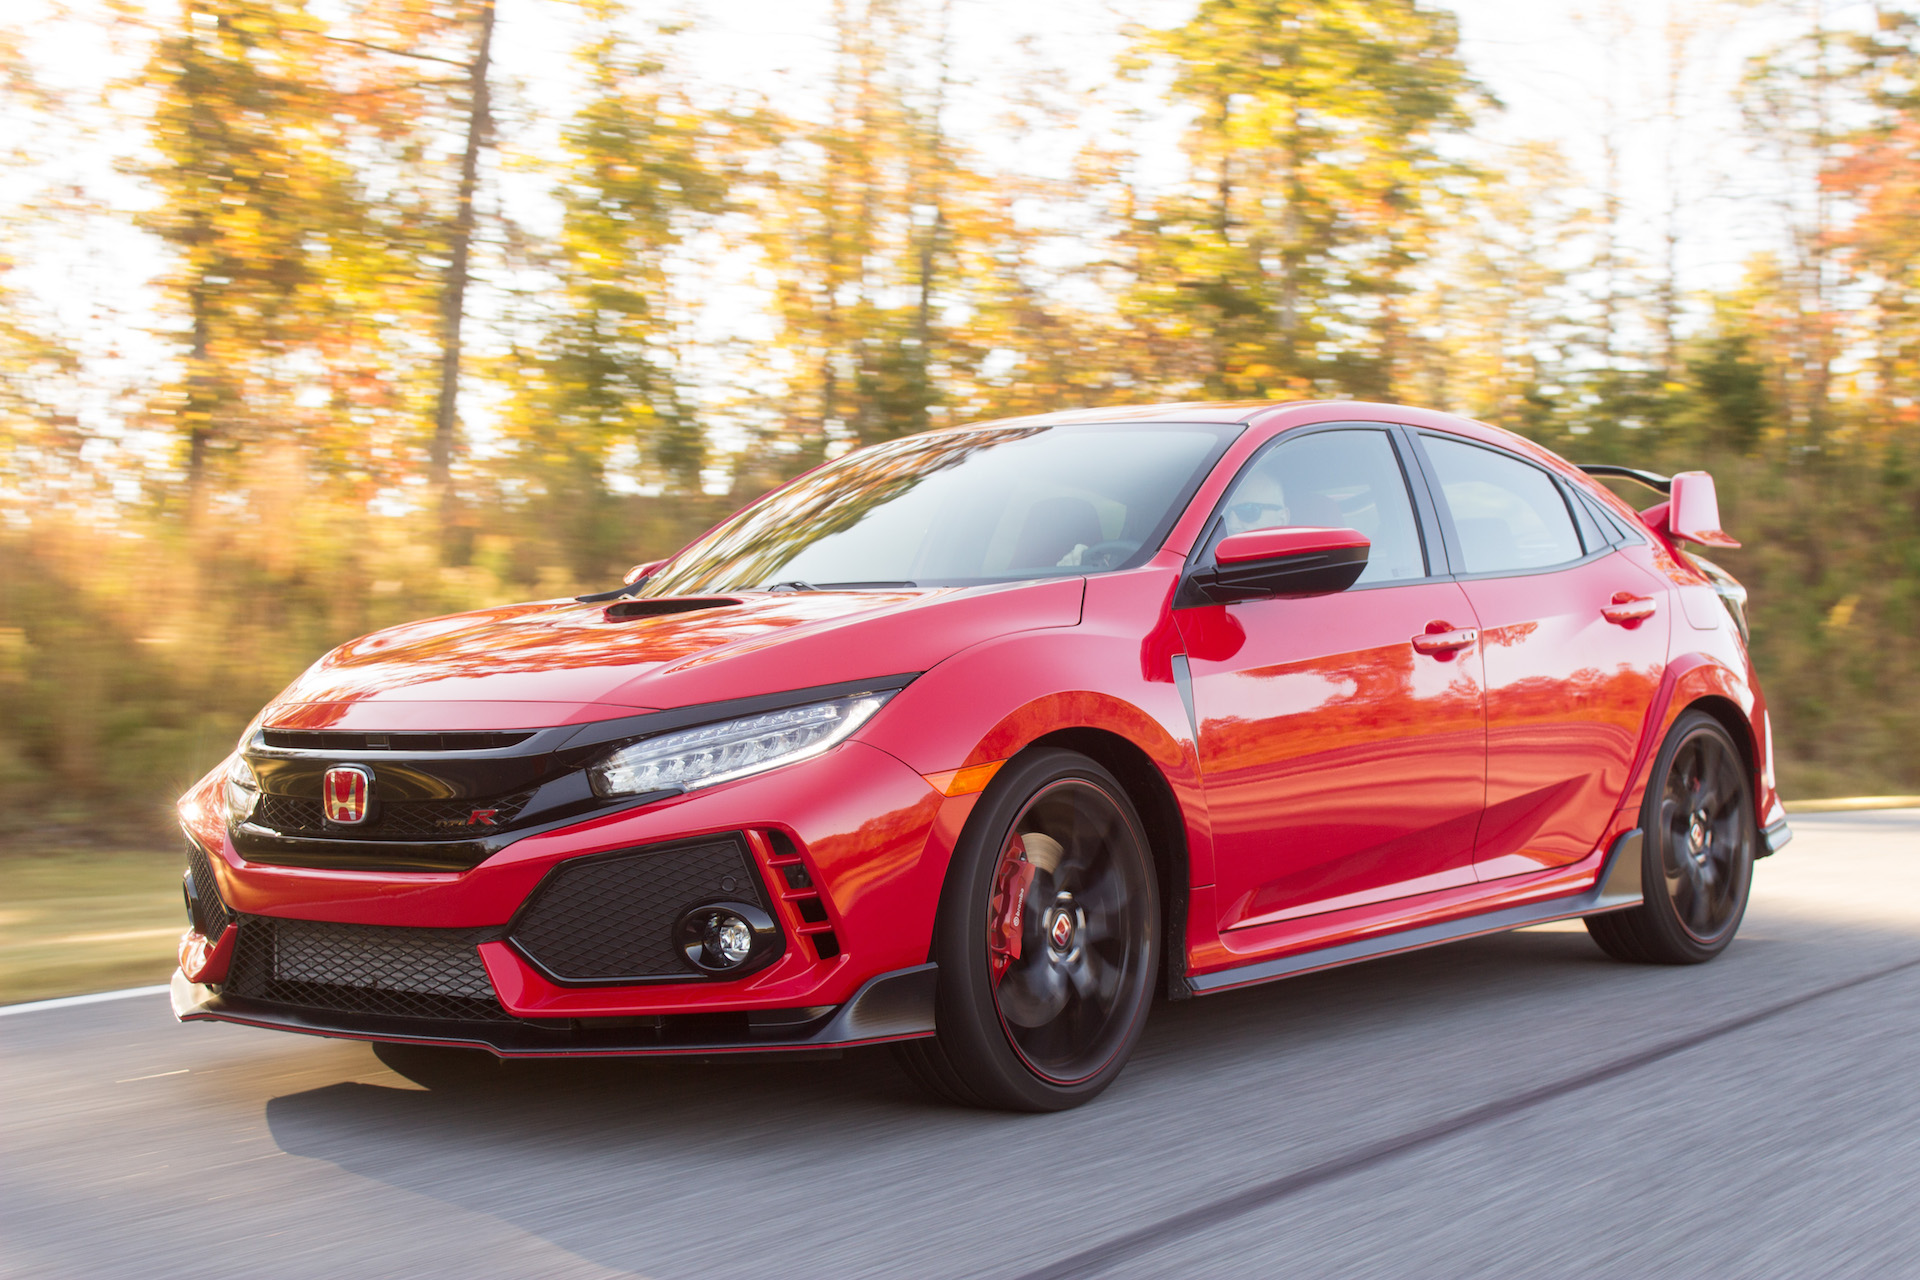 Honda civic type r motor authority 39 s best car to buy 2018 for Buy honda civic type r